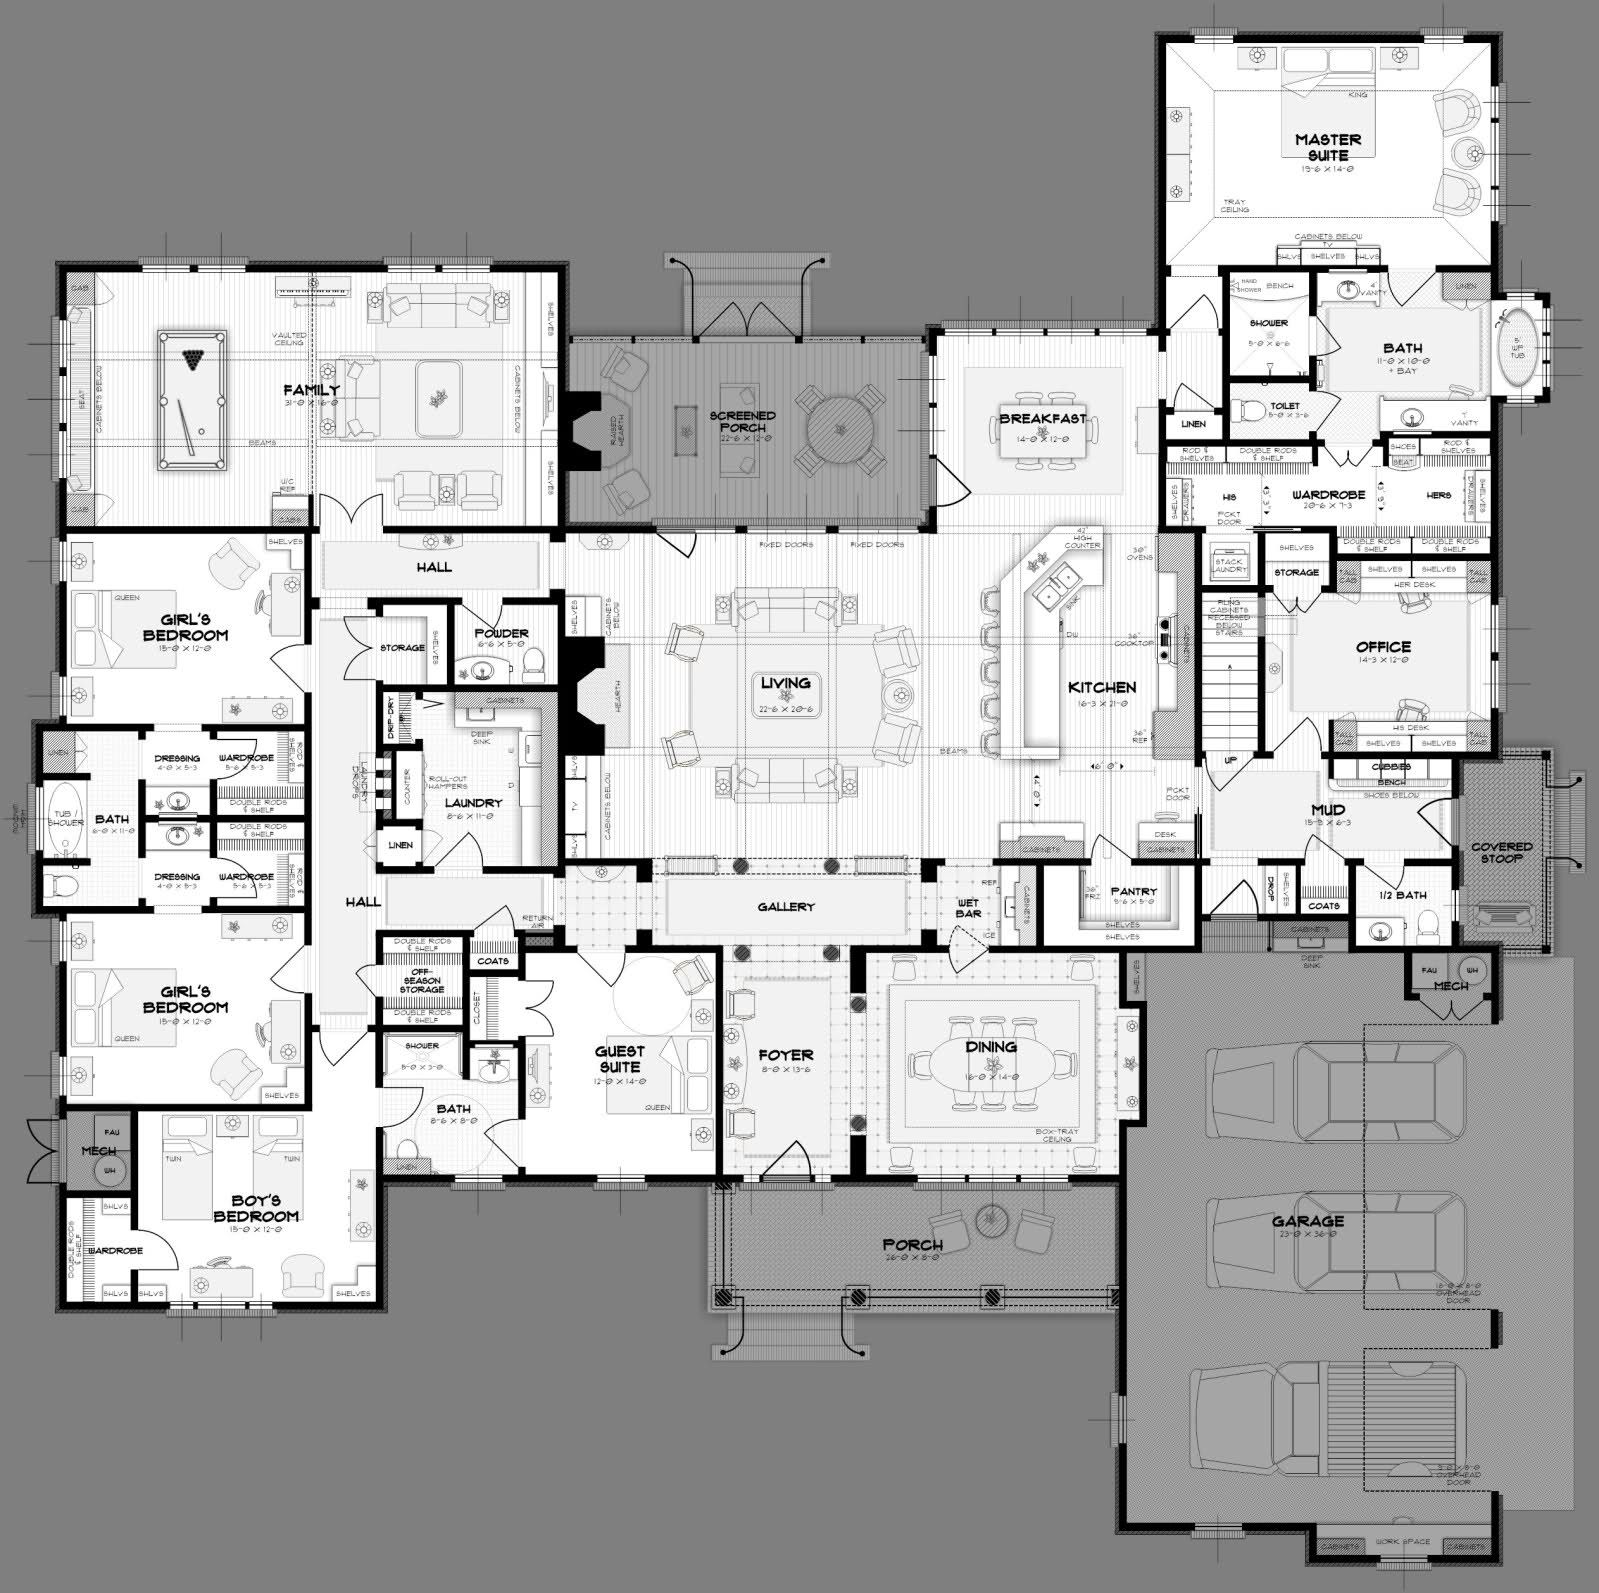 Big 5 Bedroom House Plans | my plans - help needed with bedroom ...